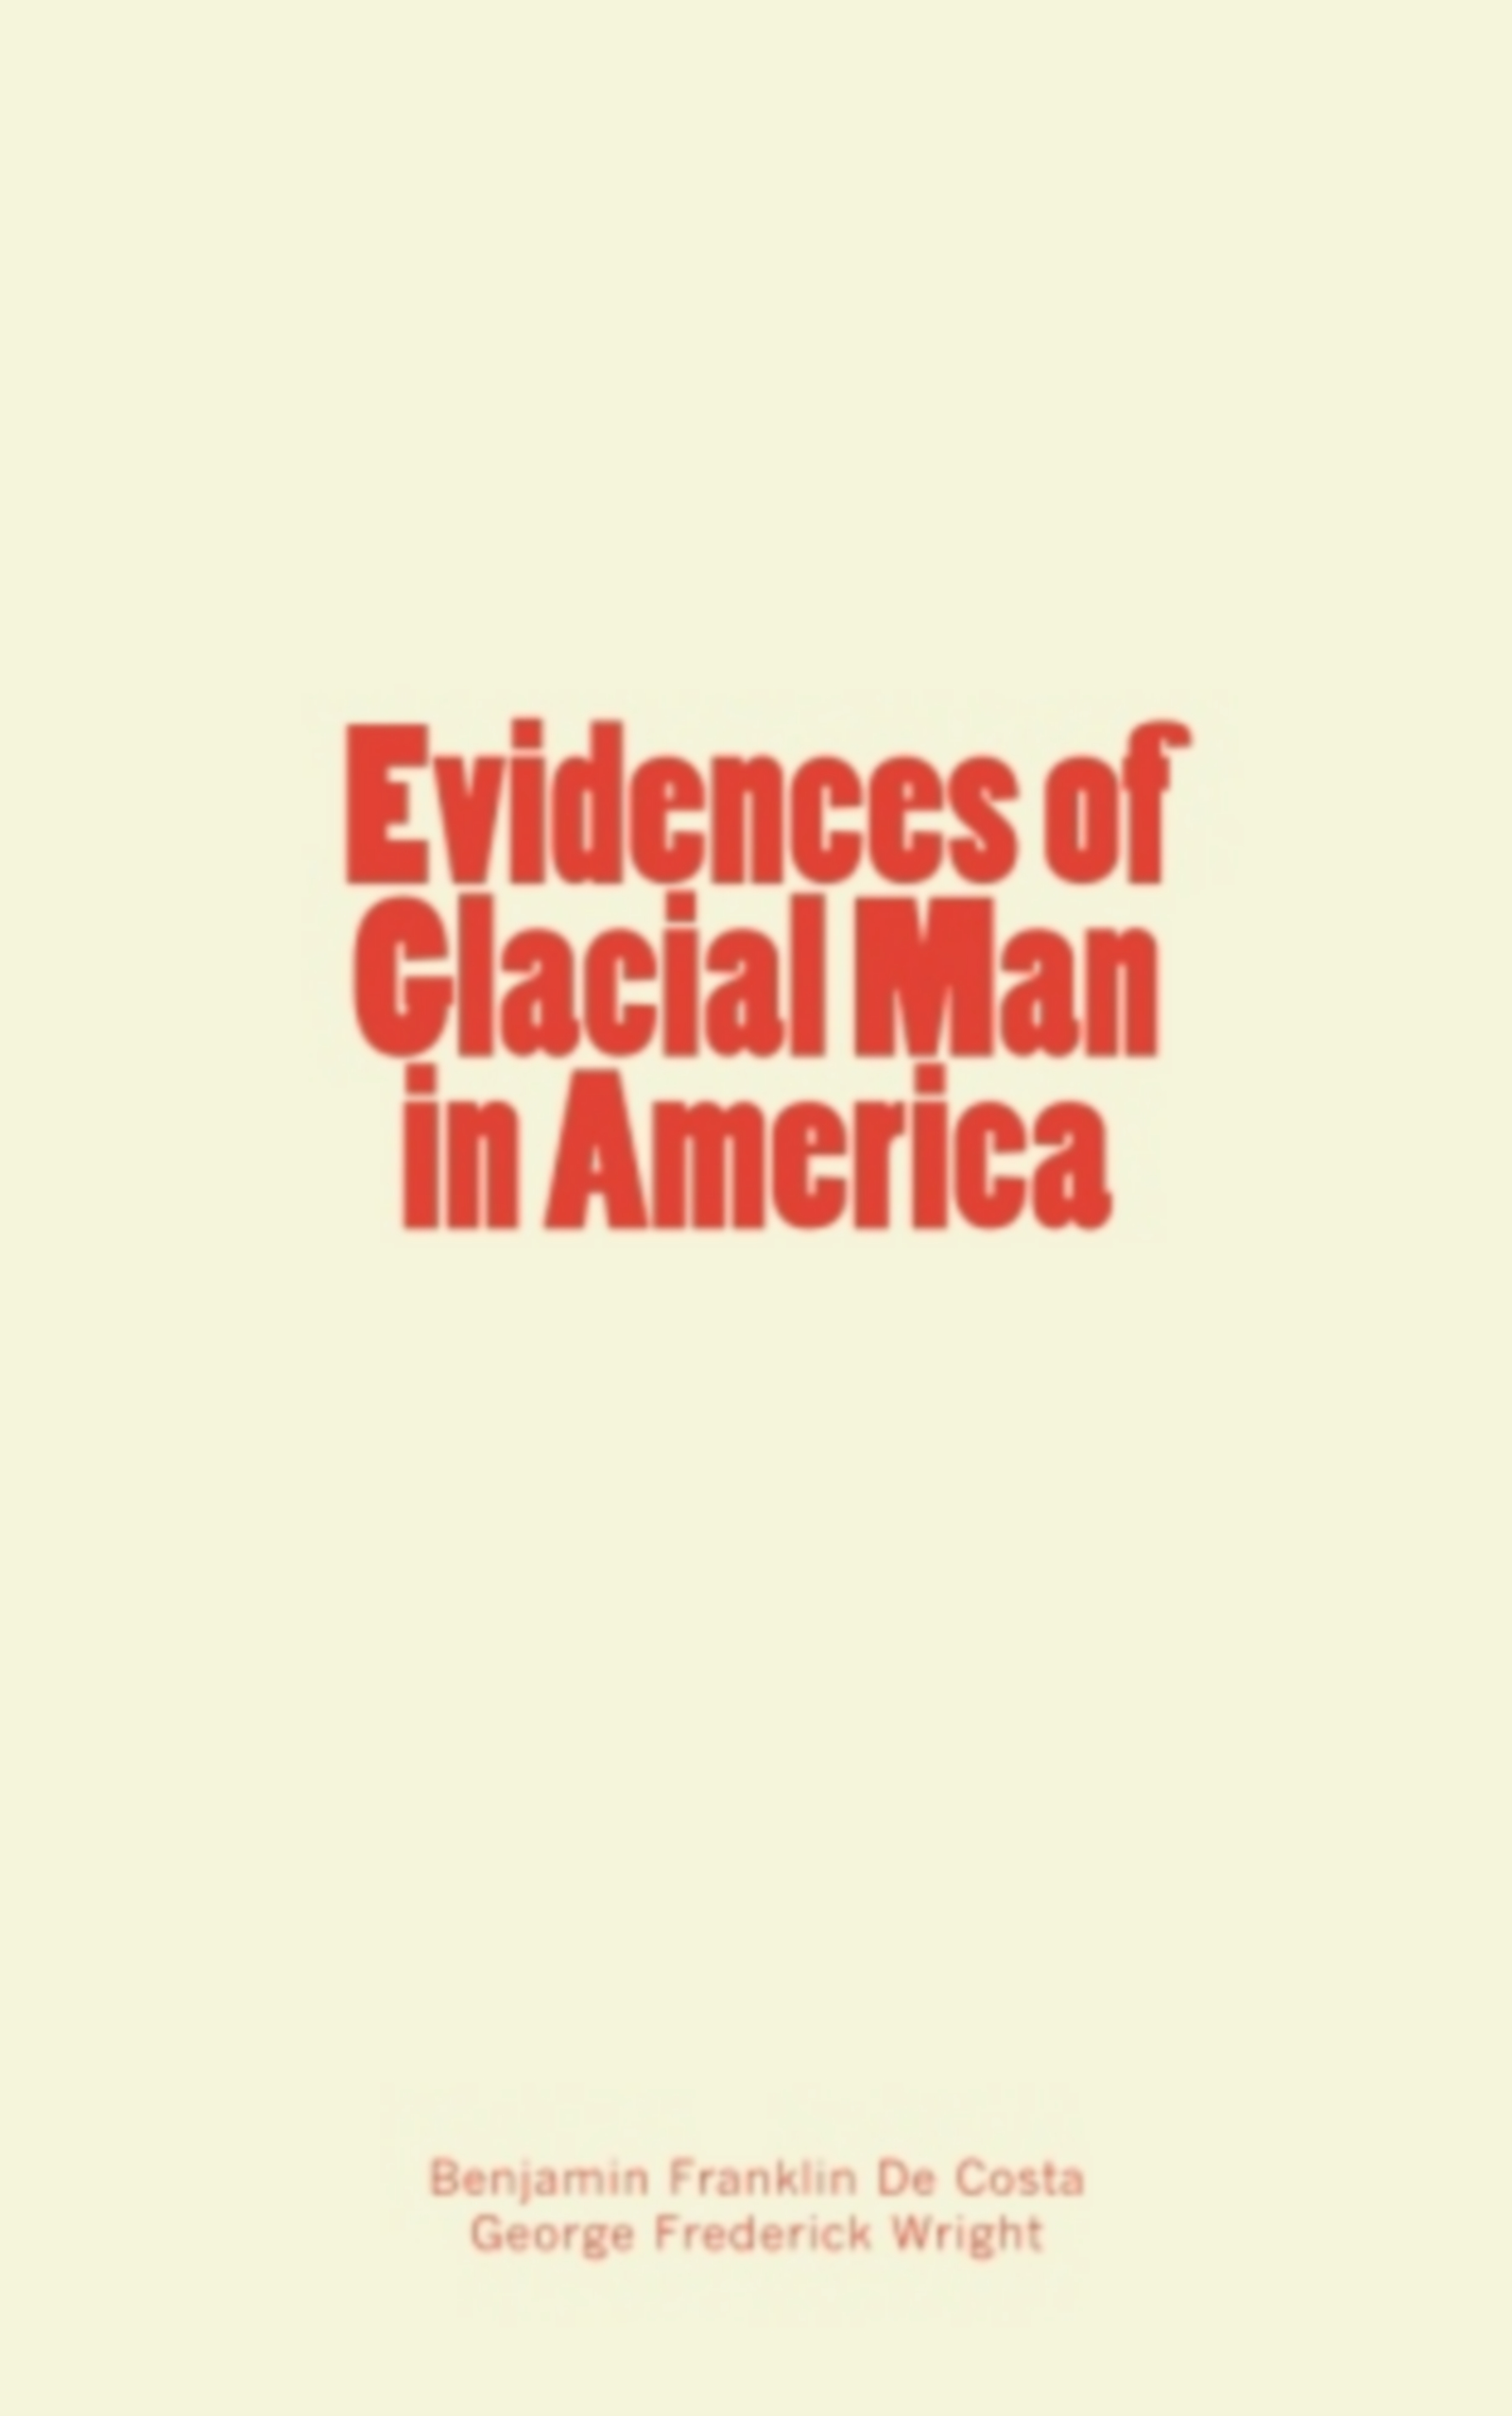 Evidences of Glacial Man in America